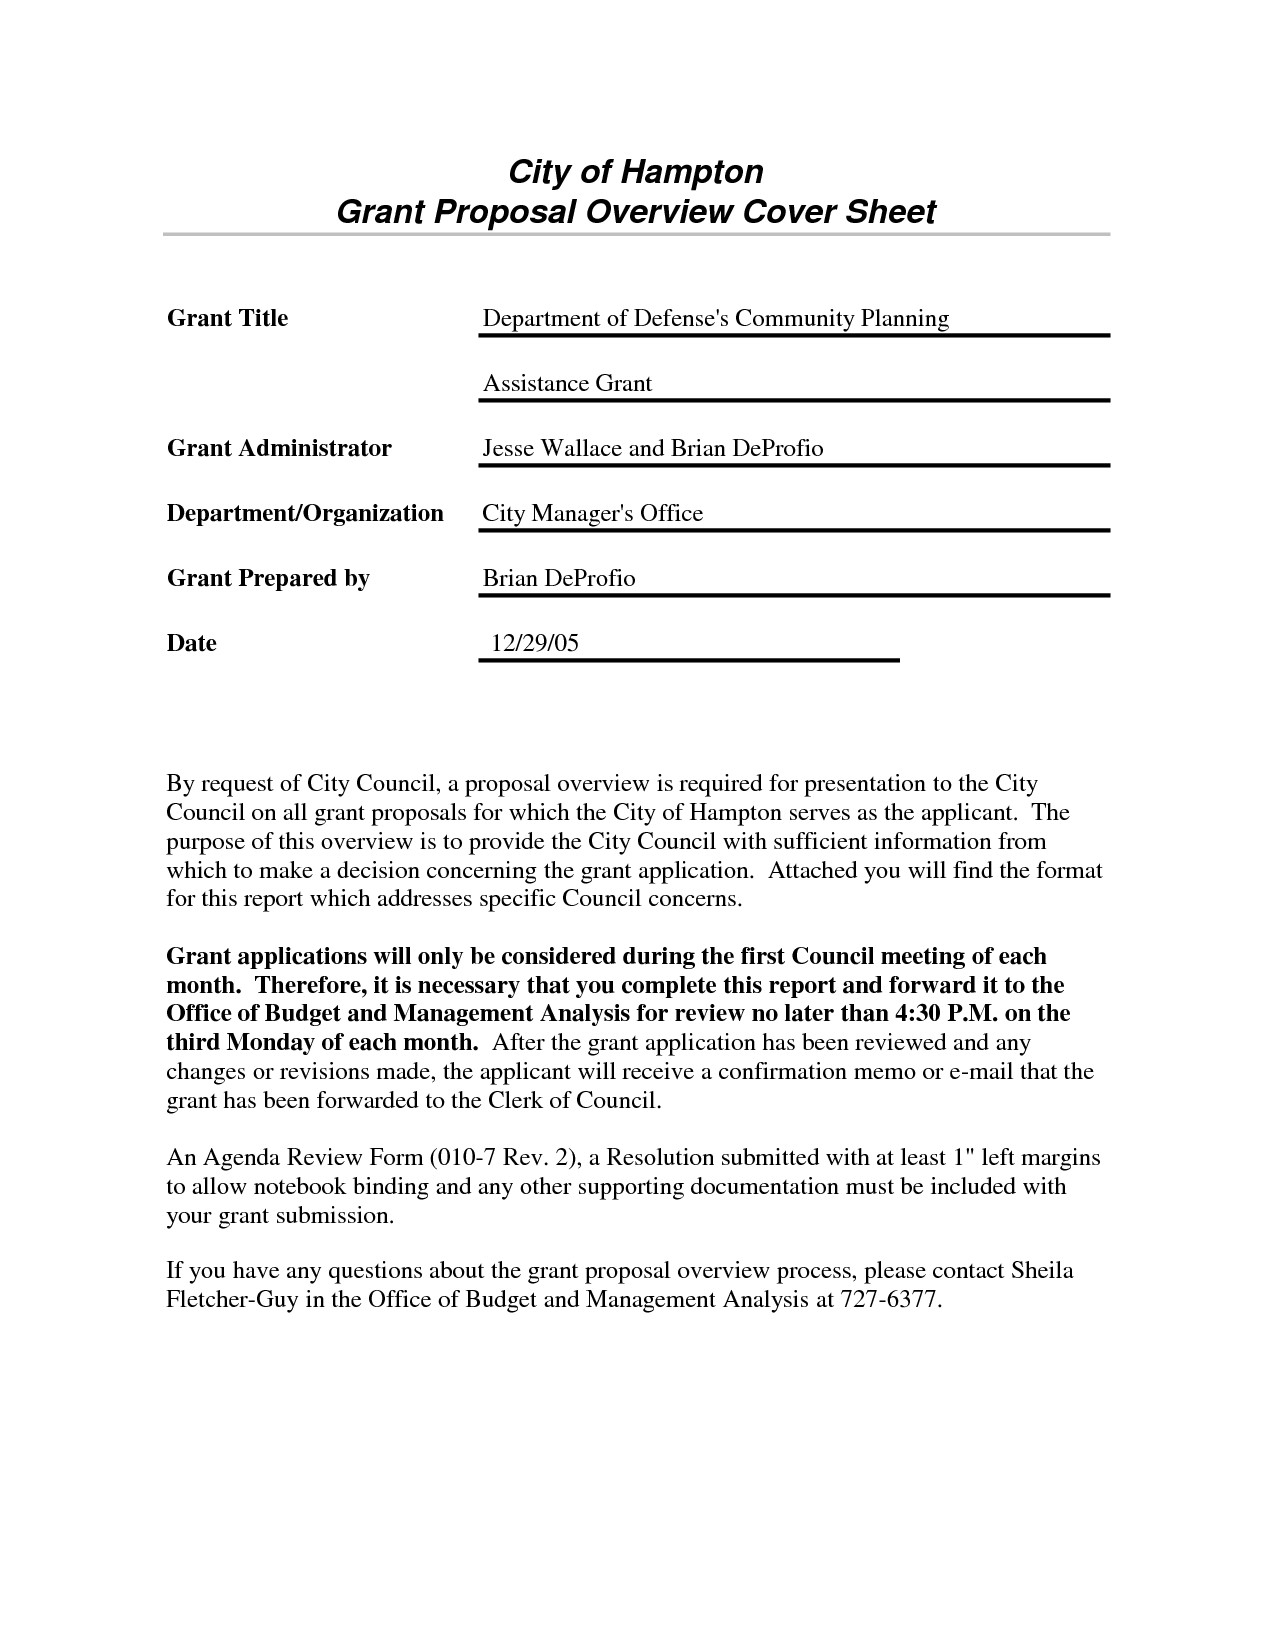 Business Proposal Letter Template Free Download - Sample Draft Business Proposal Letter Template C Definition Of A